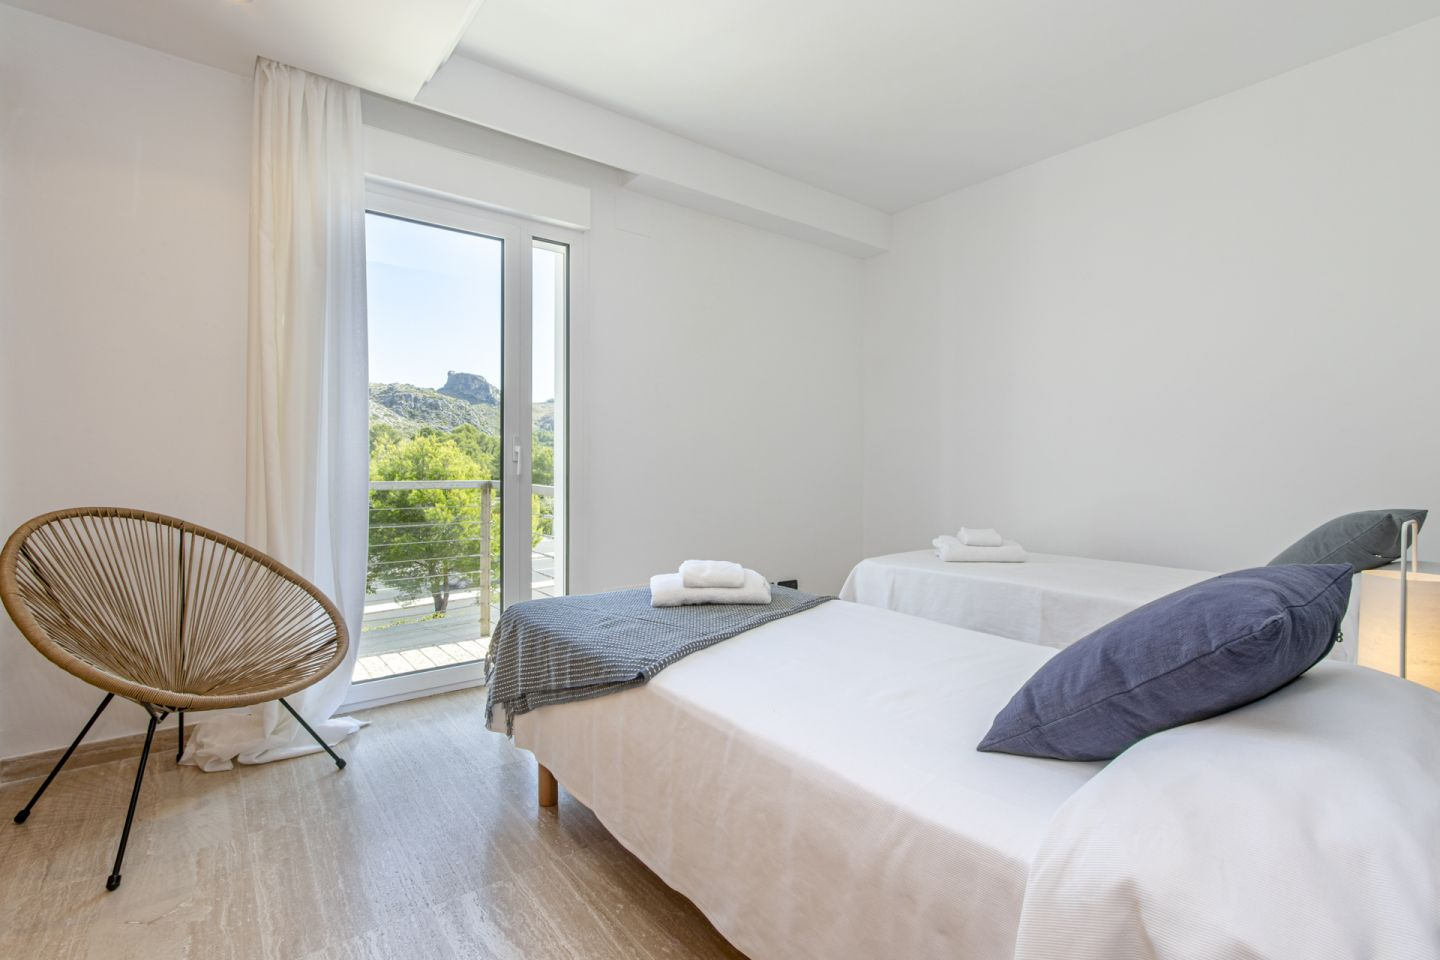 4 Bed Penthouse for sale in PUERTO POLLENSA 17